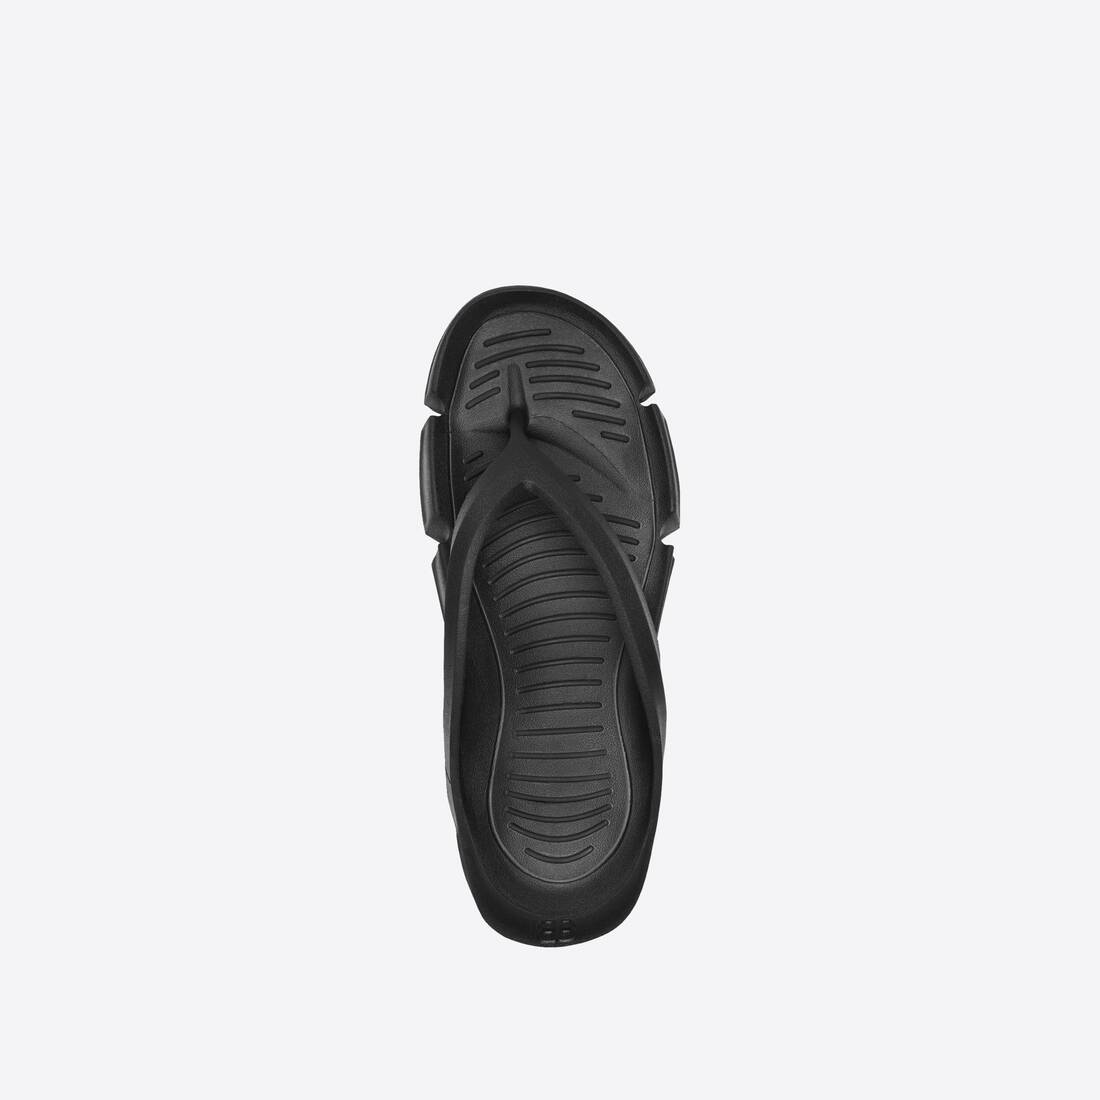 Display zoomed version of mold thong sandal 4